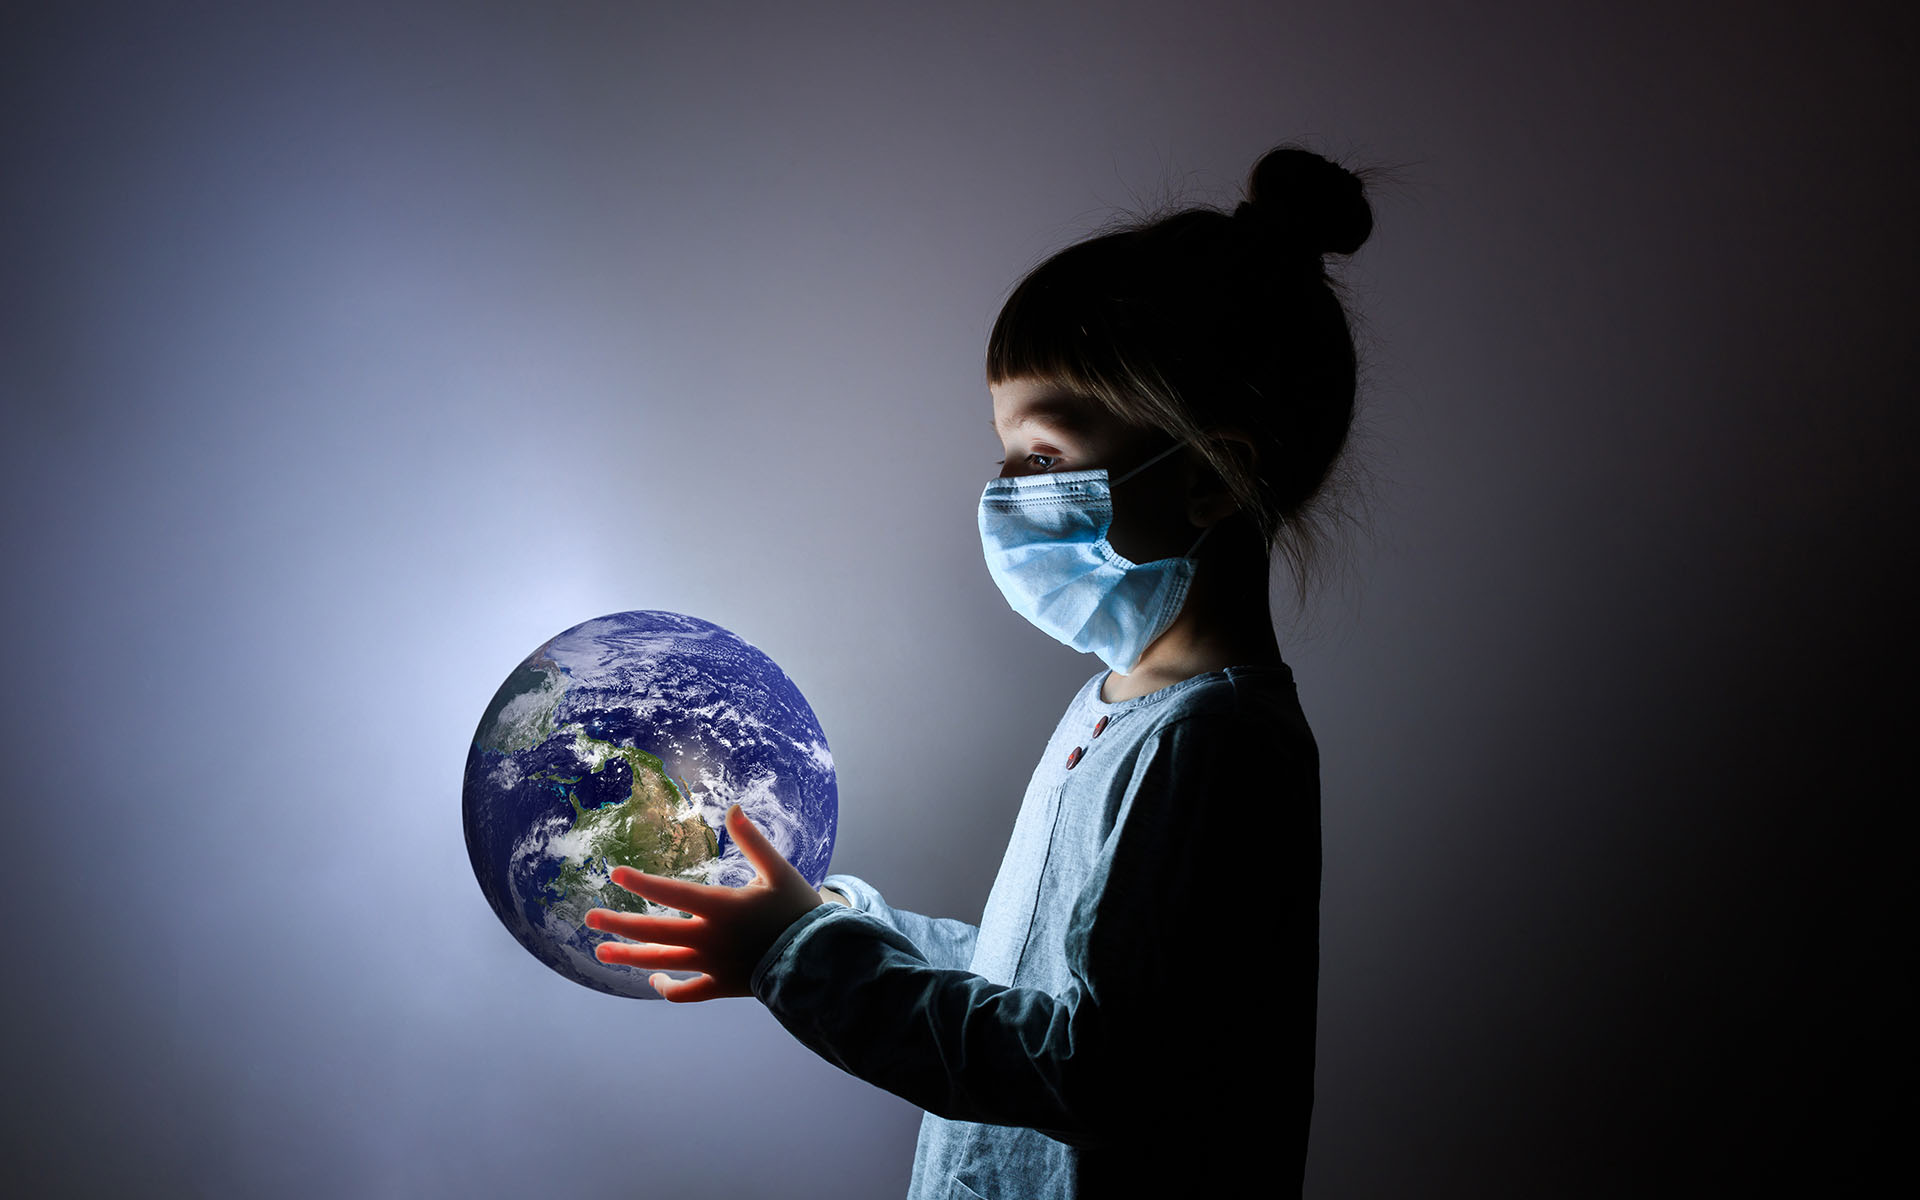 6 Things COVID19 Can Teach Us About Ourselves - small child wearing a face mask holding the world in her hands